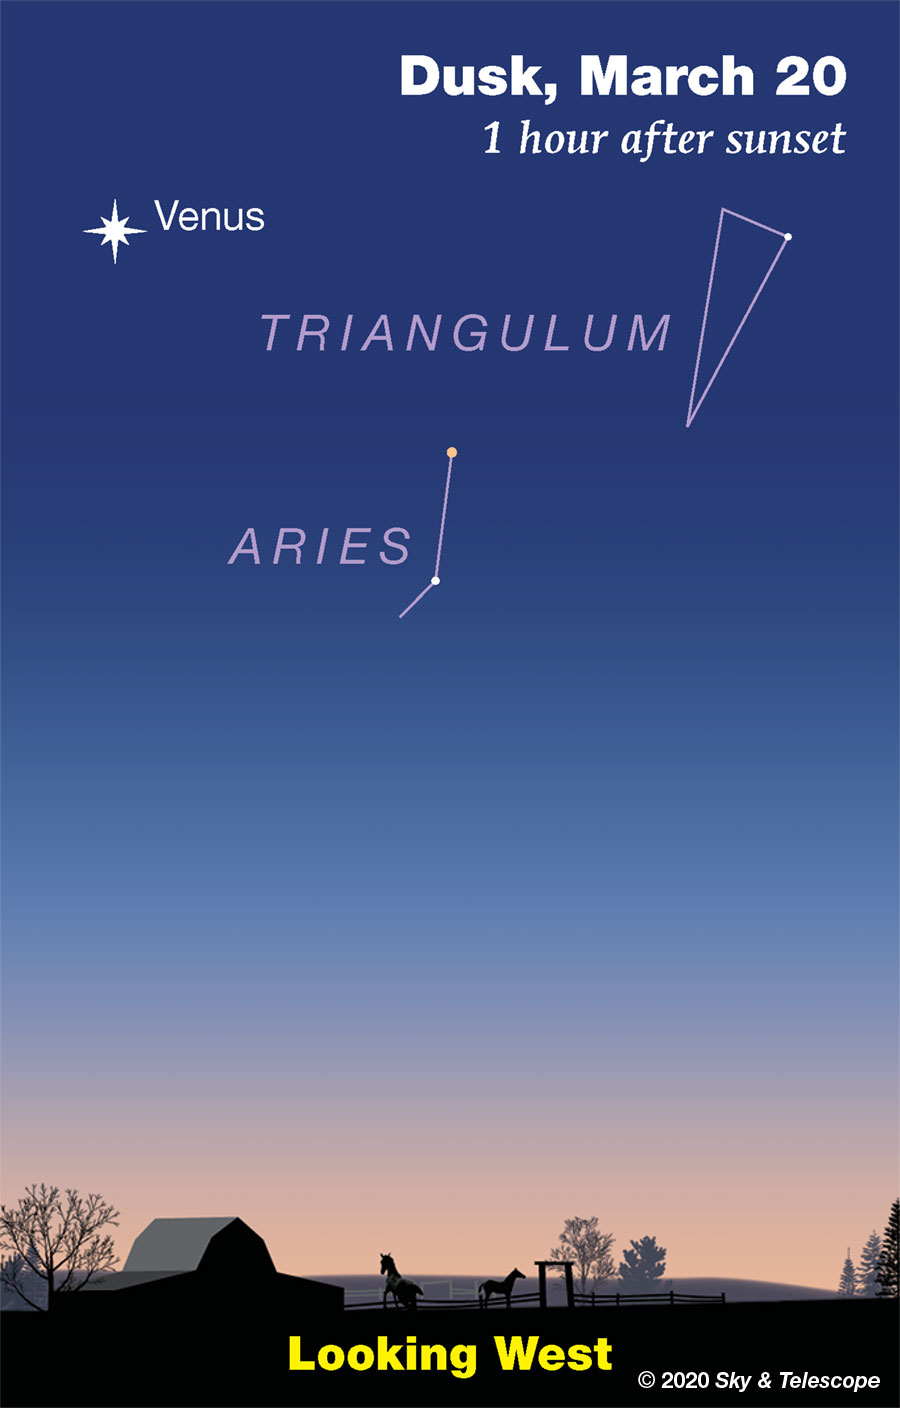 Once darkness falls, look for Aries and dimmer Triangulum some 12 to 16 degrees from brilliant Venus (March 20, 2020).